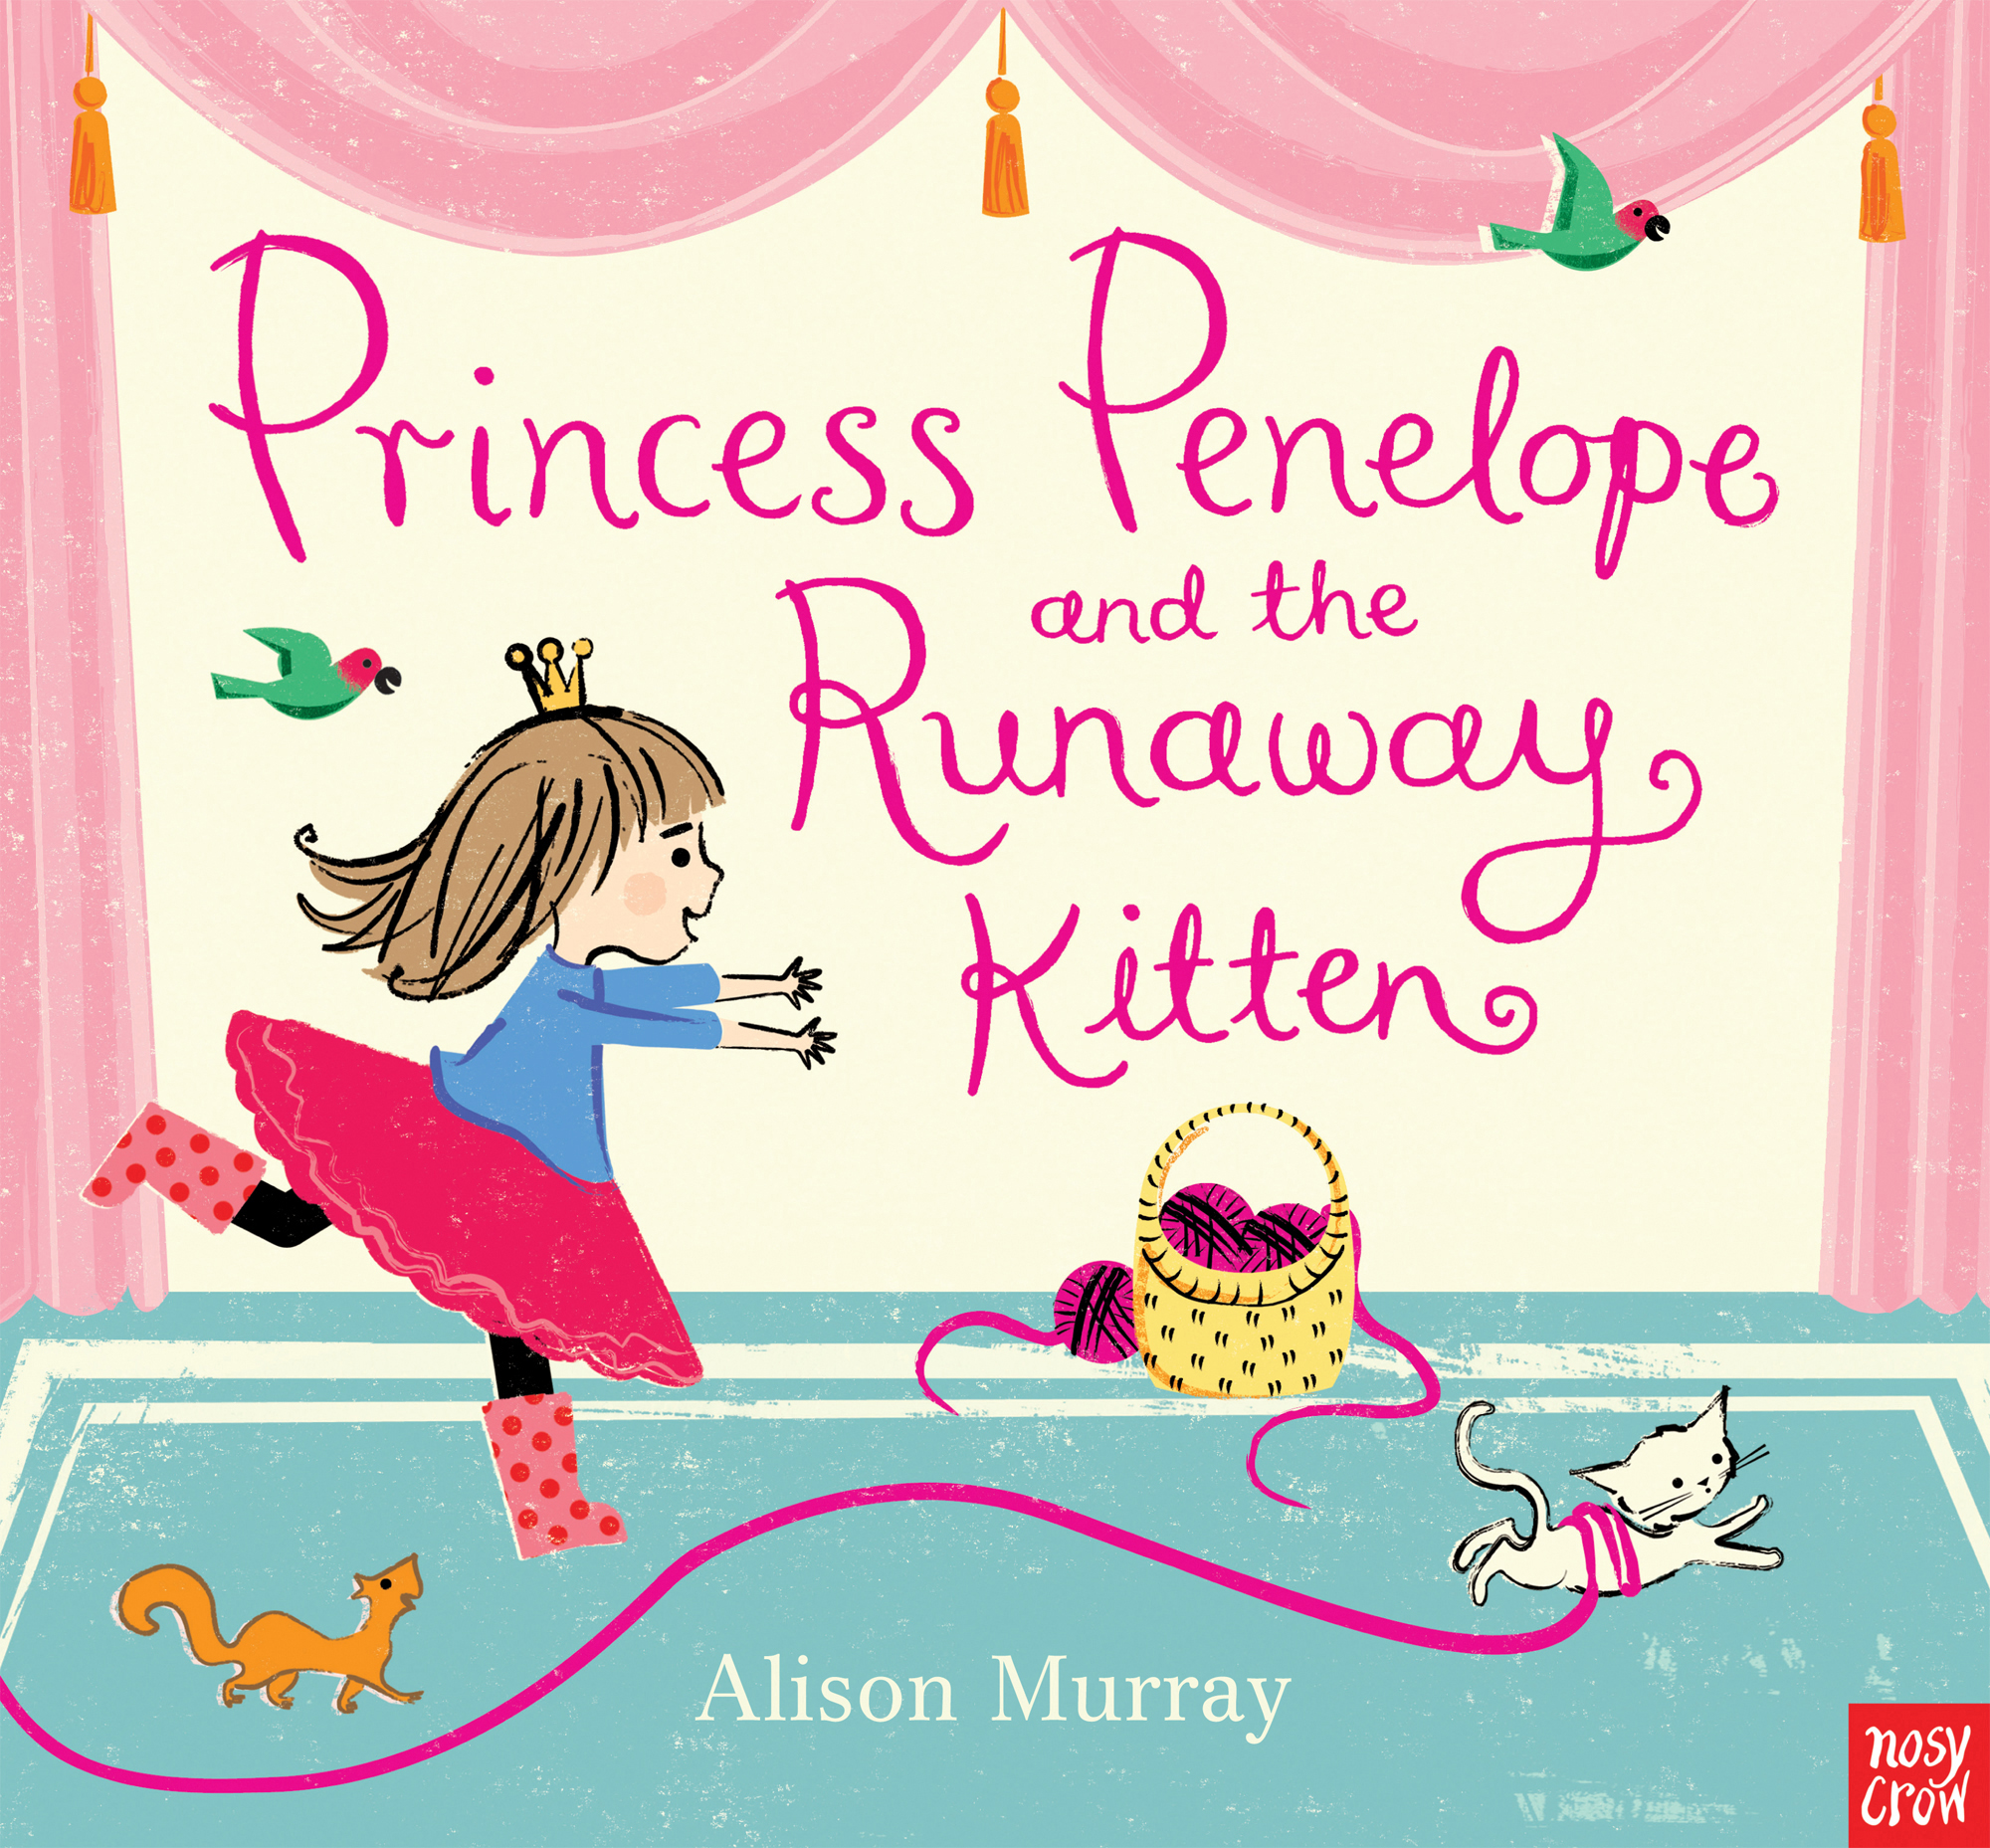 Princess Penelope and the Runaway Kitten by Alison Murray, ISBN: 9780857632685